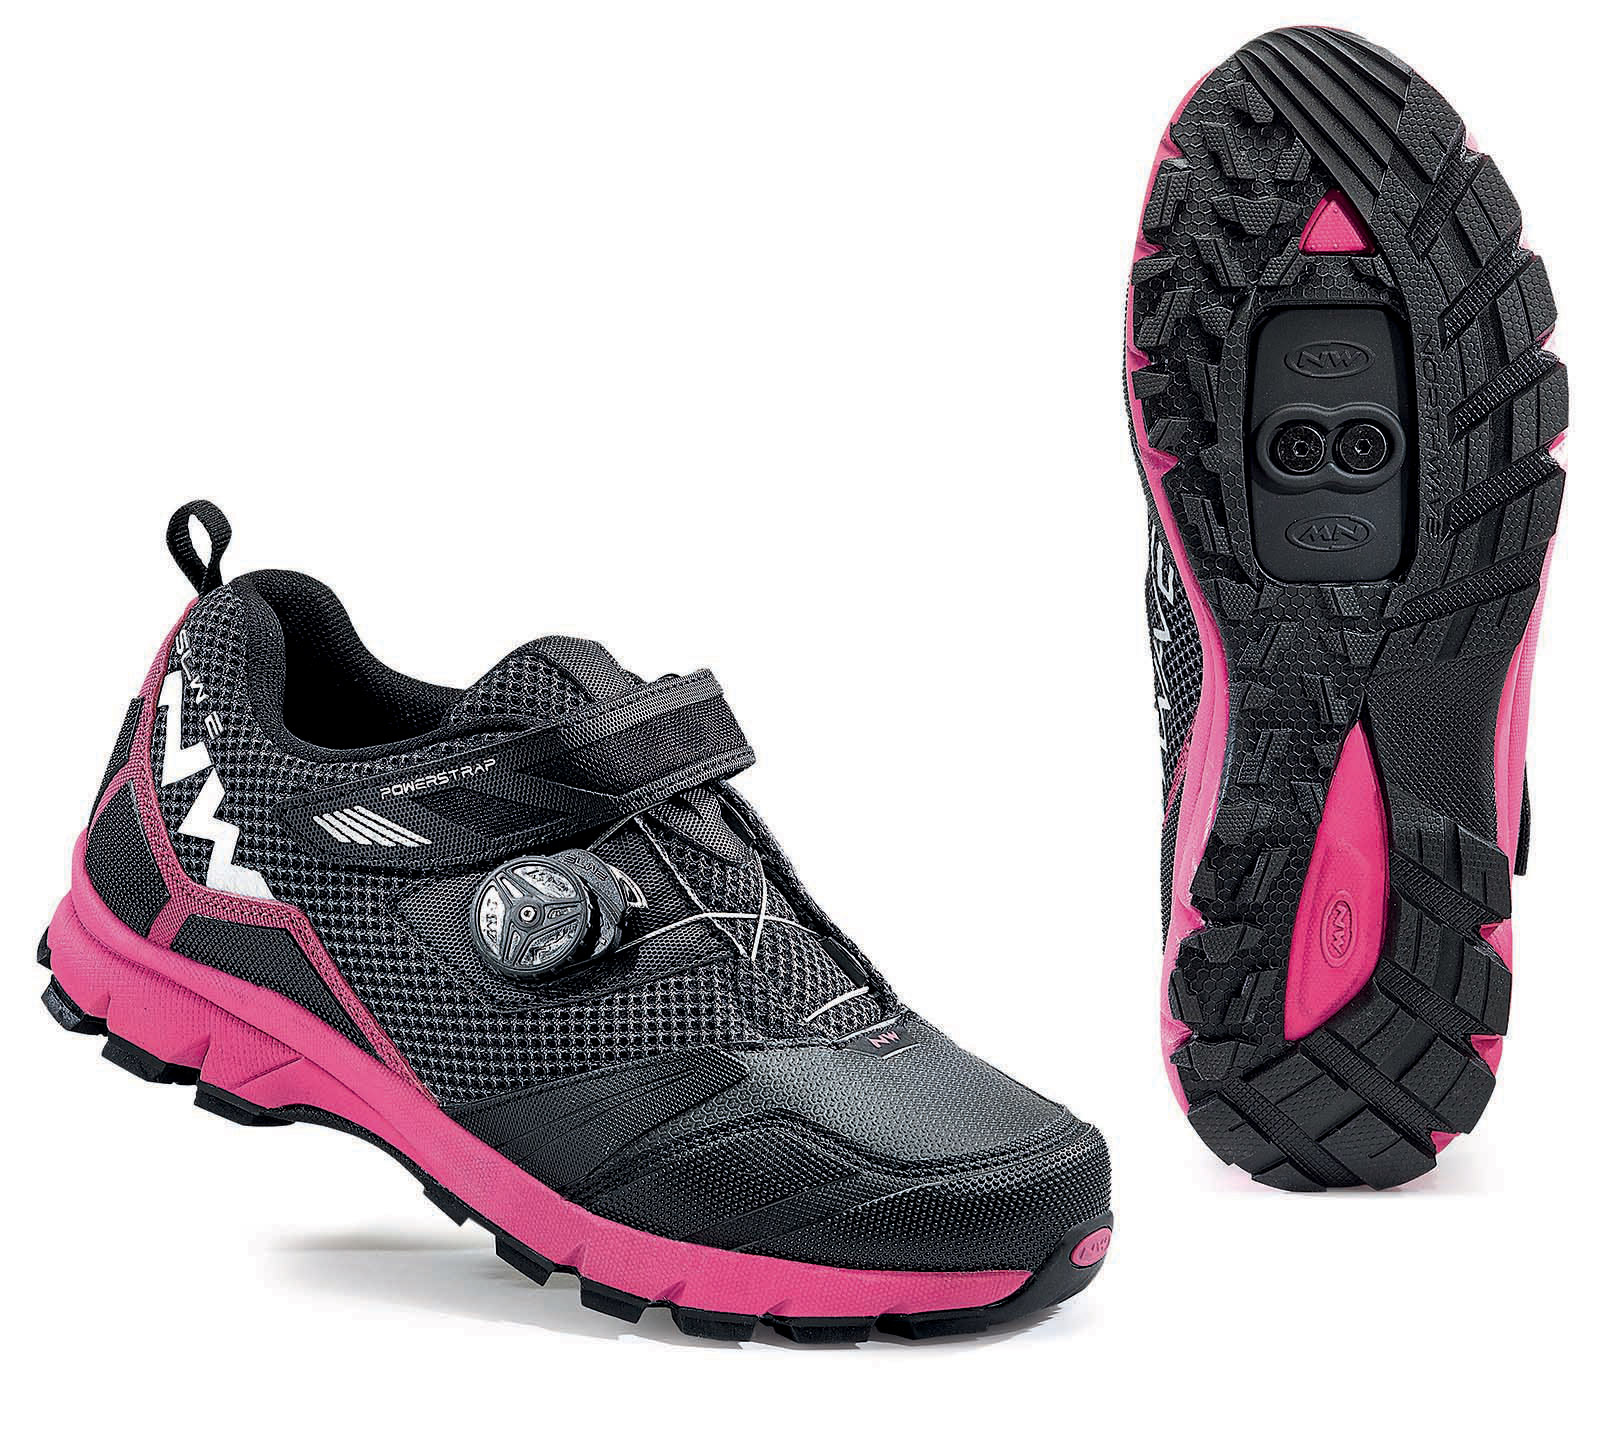 NORTHWAVE Scarpe MTB freeride donna MISSION PLUS WMN nero/fucsia